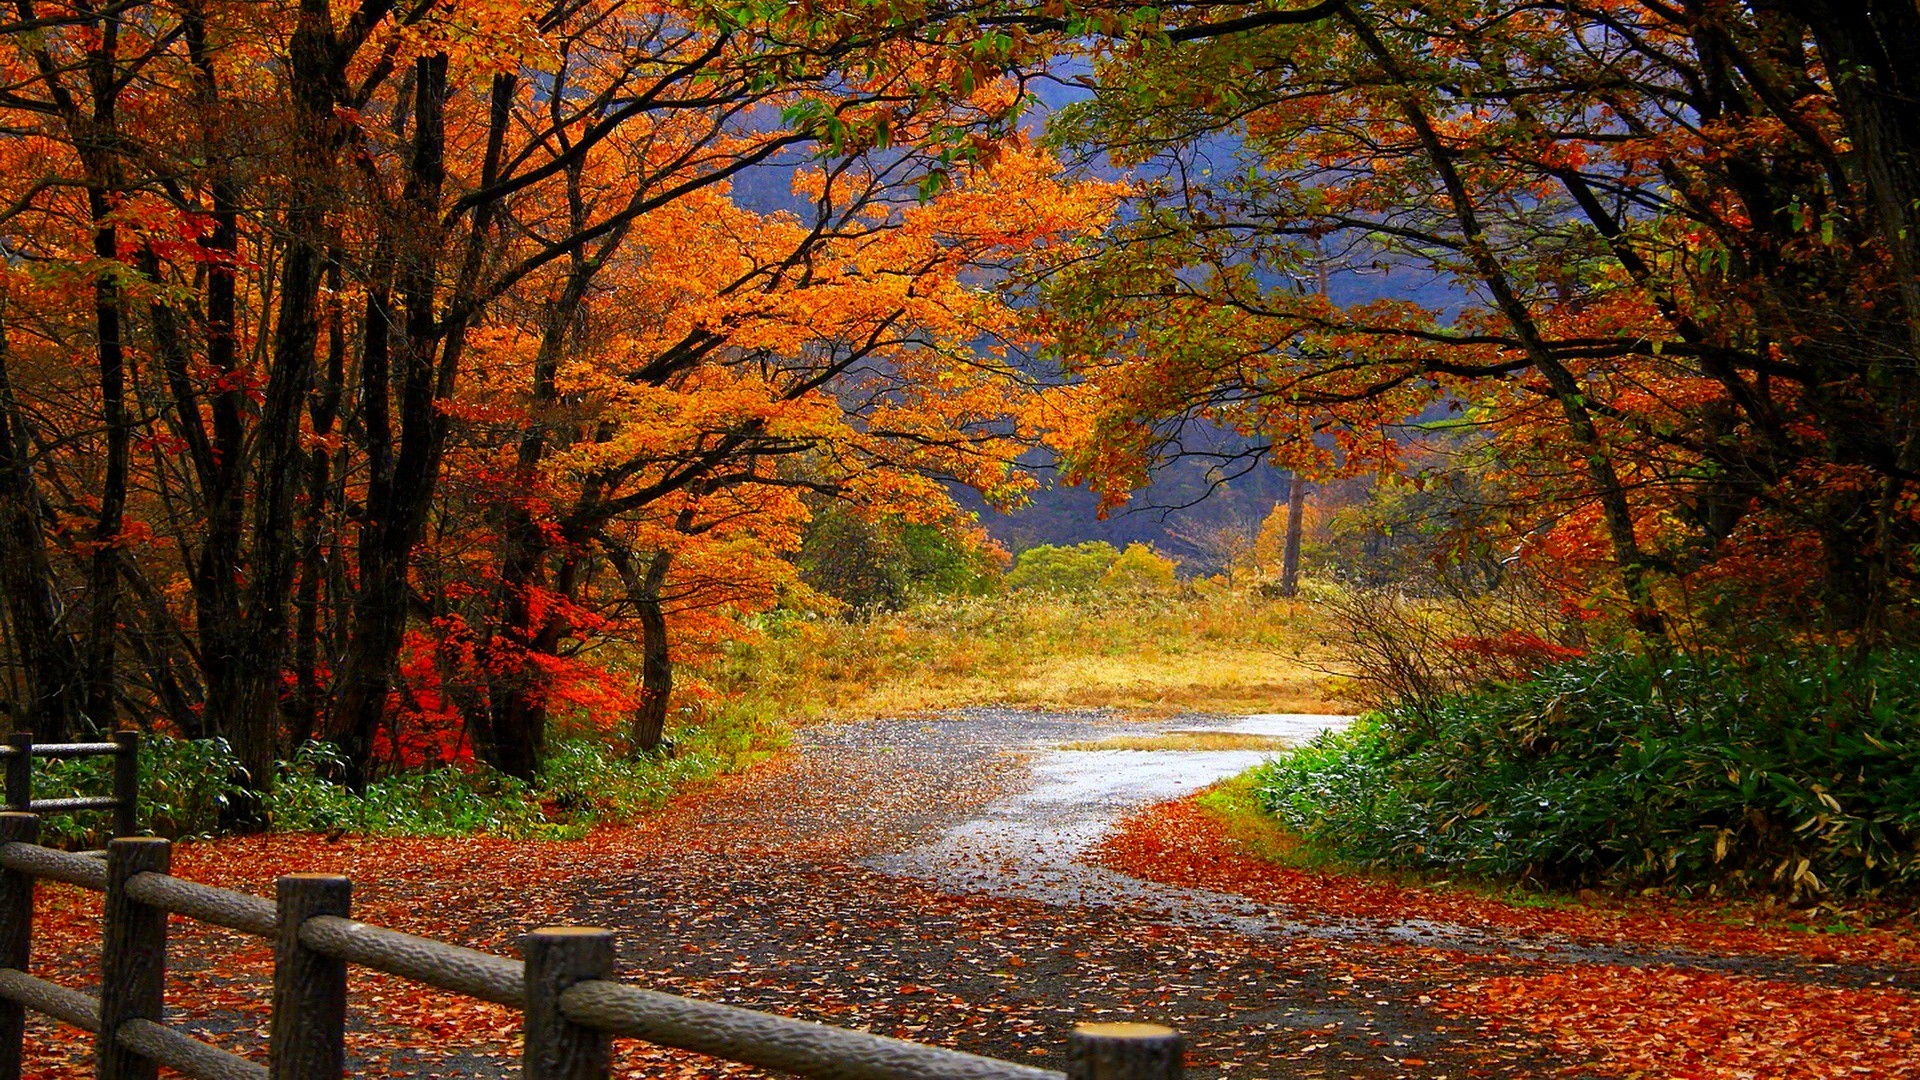 Fall Hd Wallpaper Background Image 1920x1080 Id 235242 Wallpaper Abyss